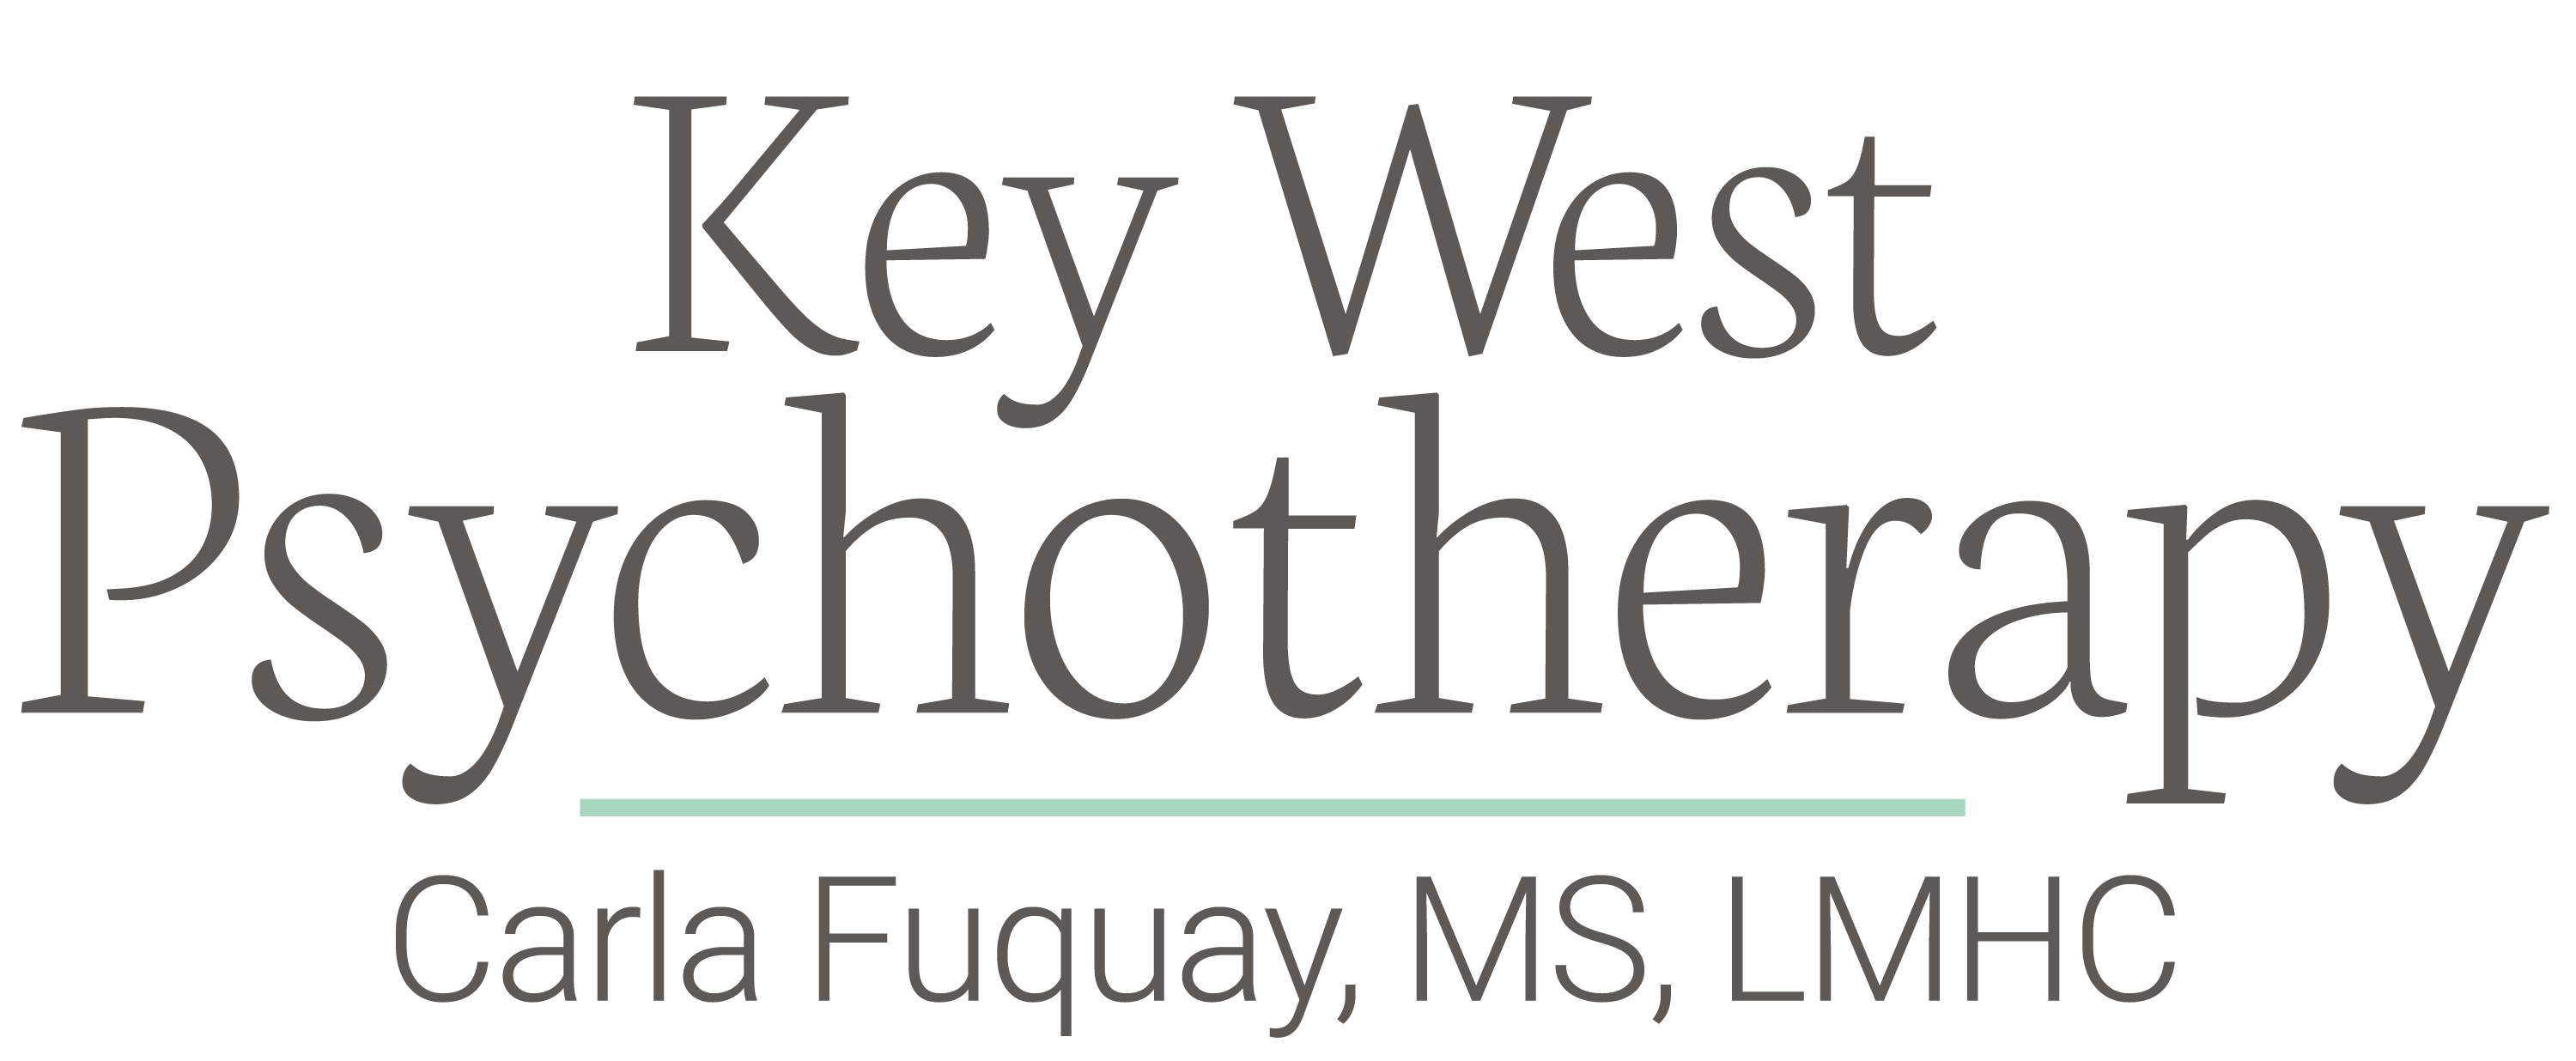 Key West Psychotherapy Carla Fuquay, MS, LMHC